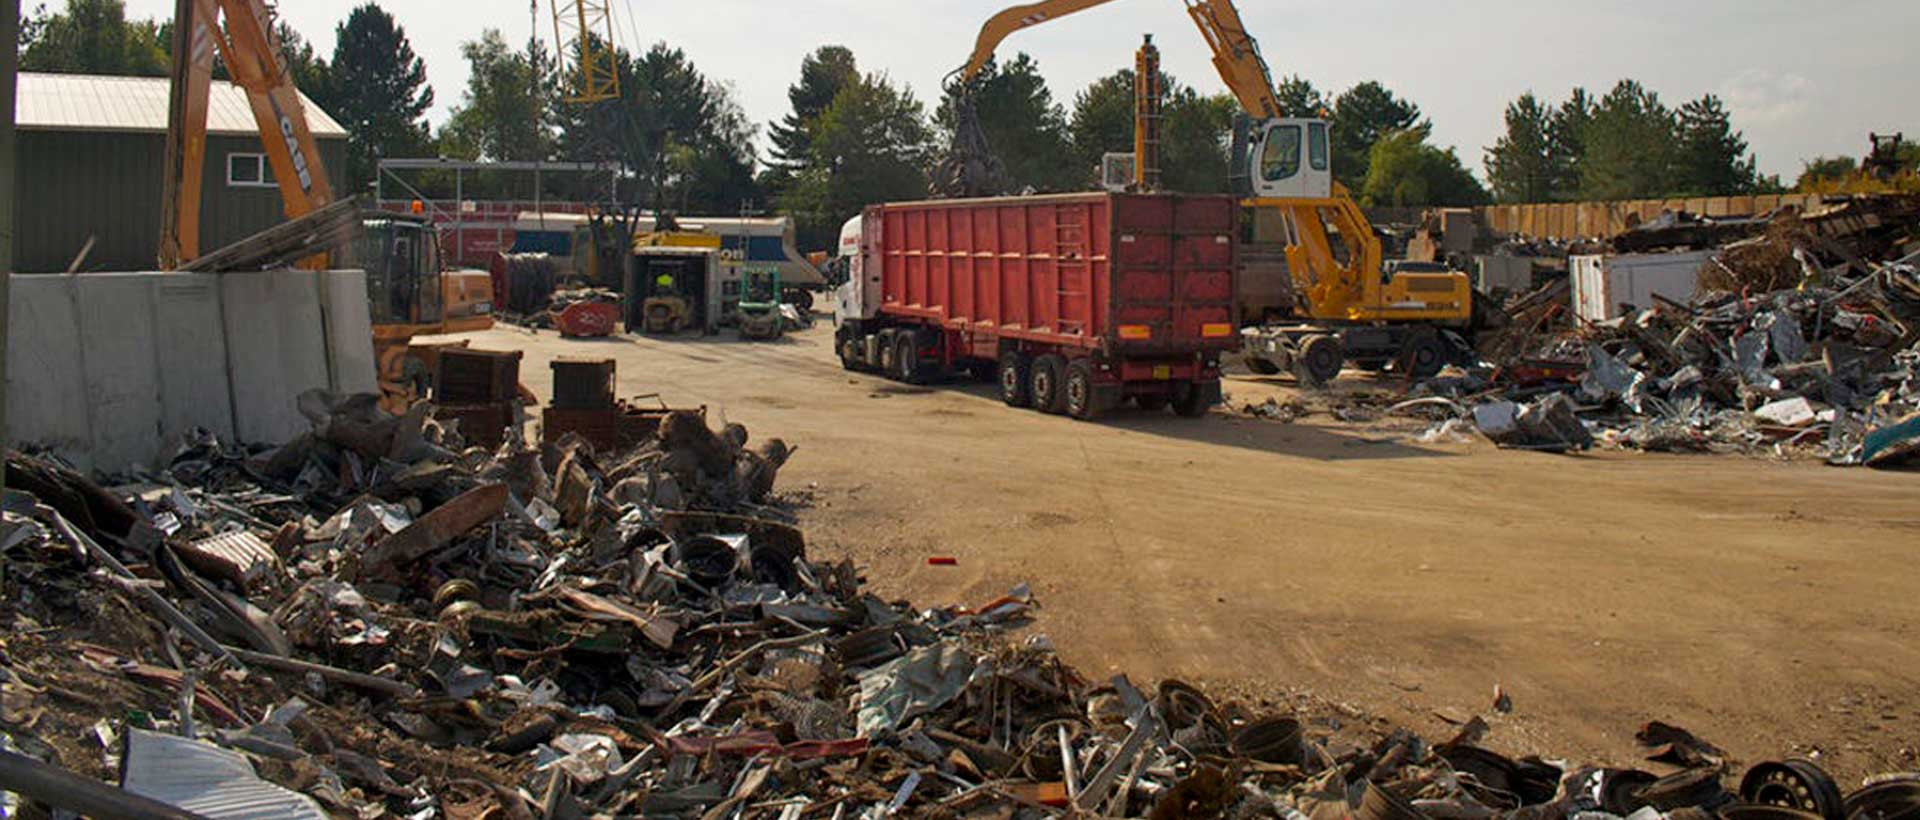 Recycling Site and Equipment